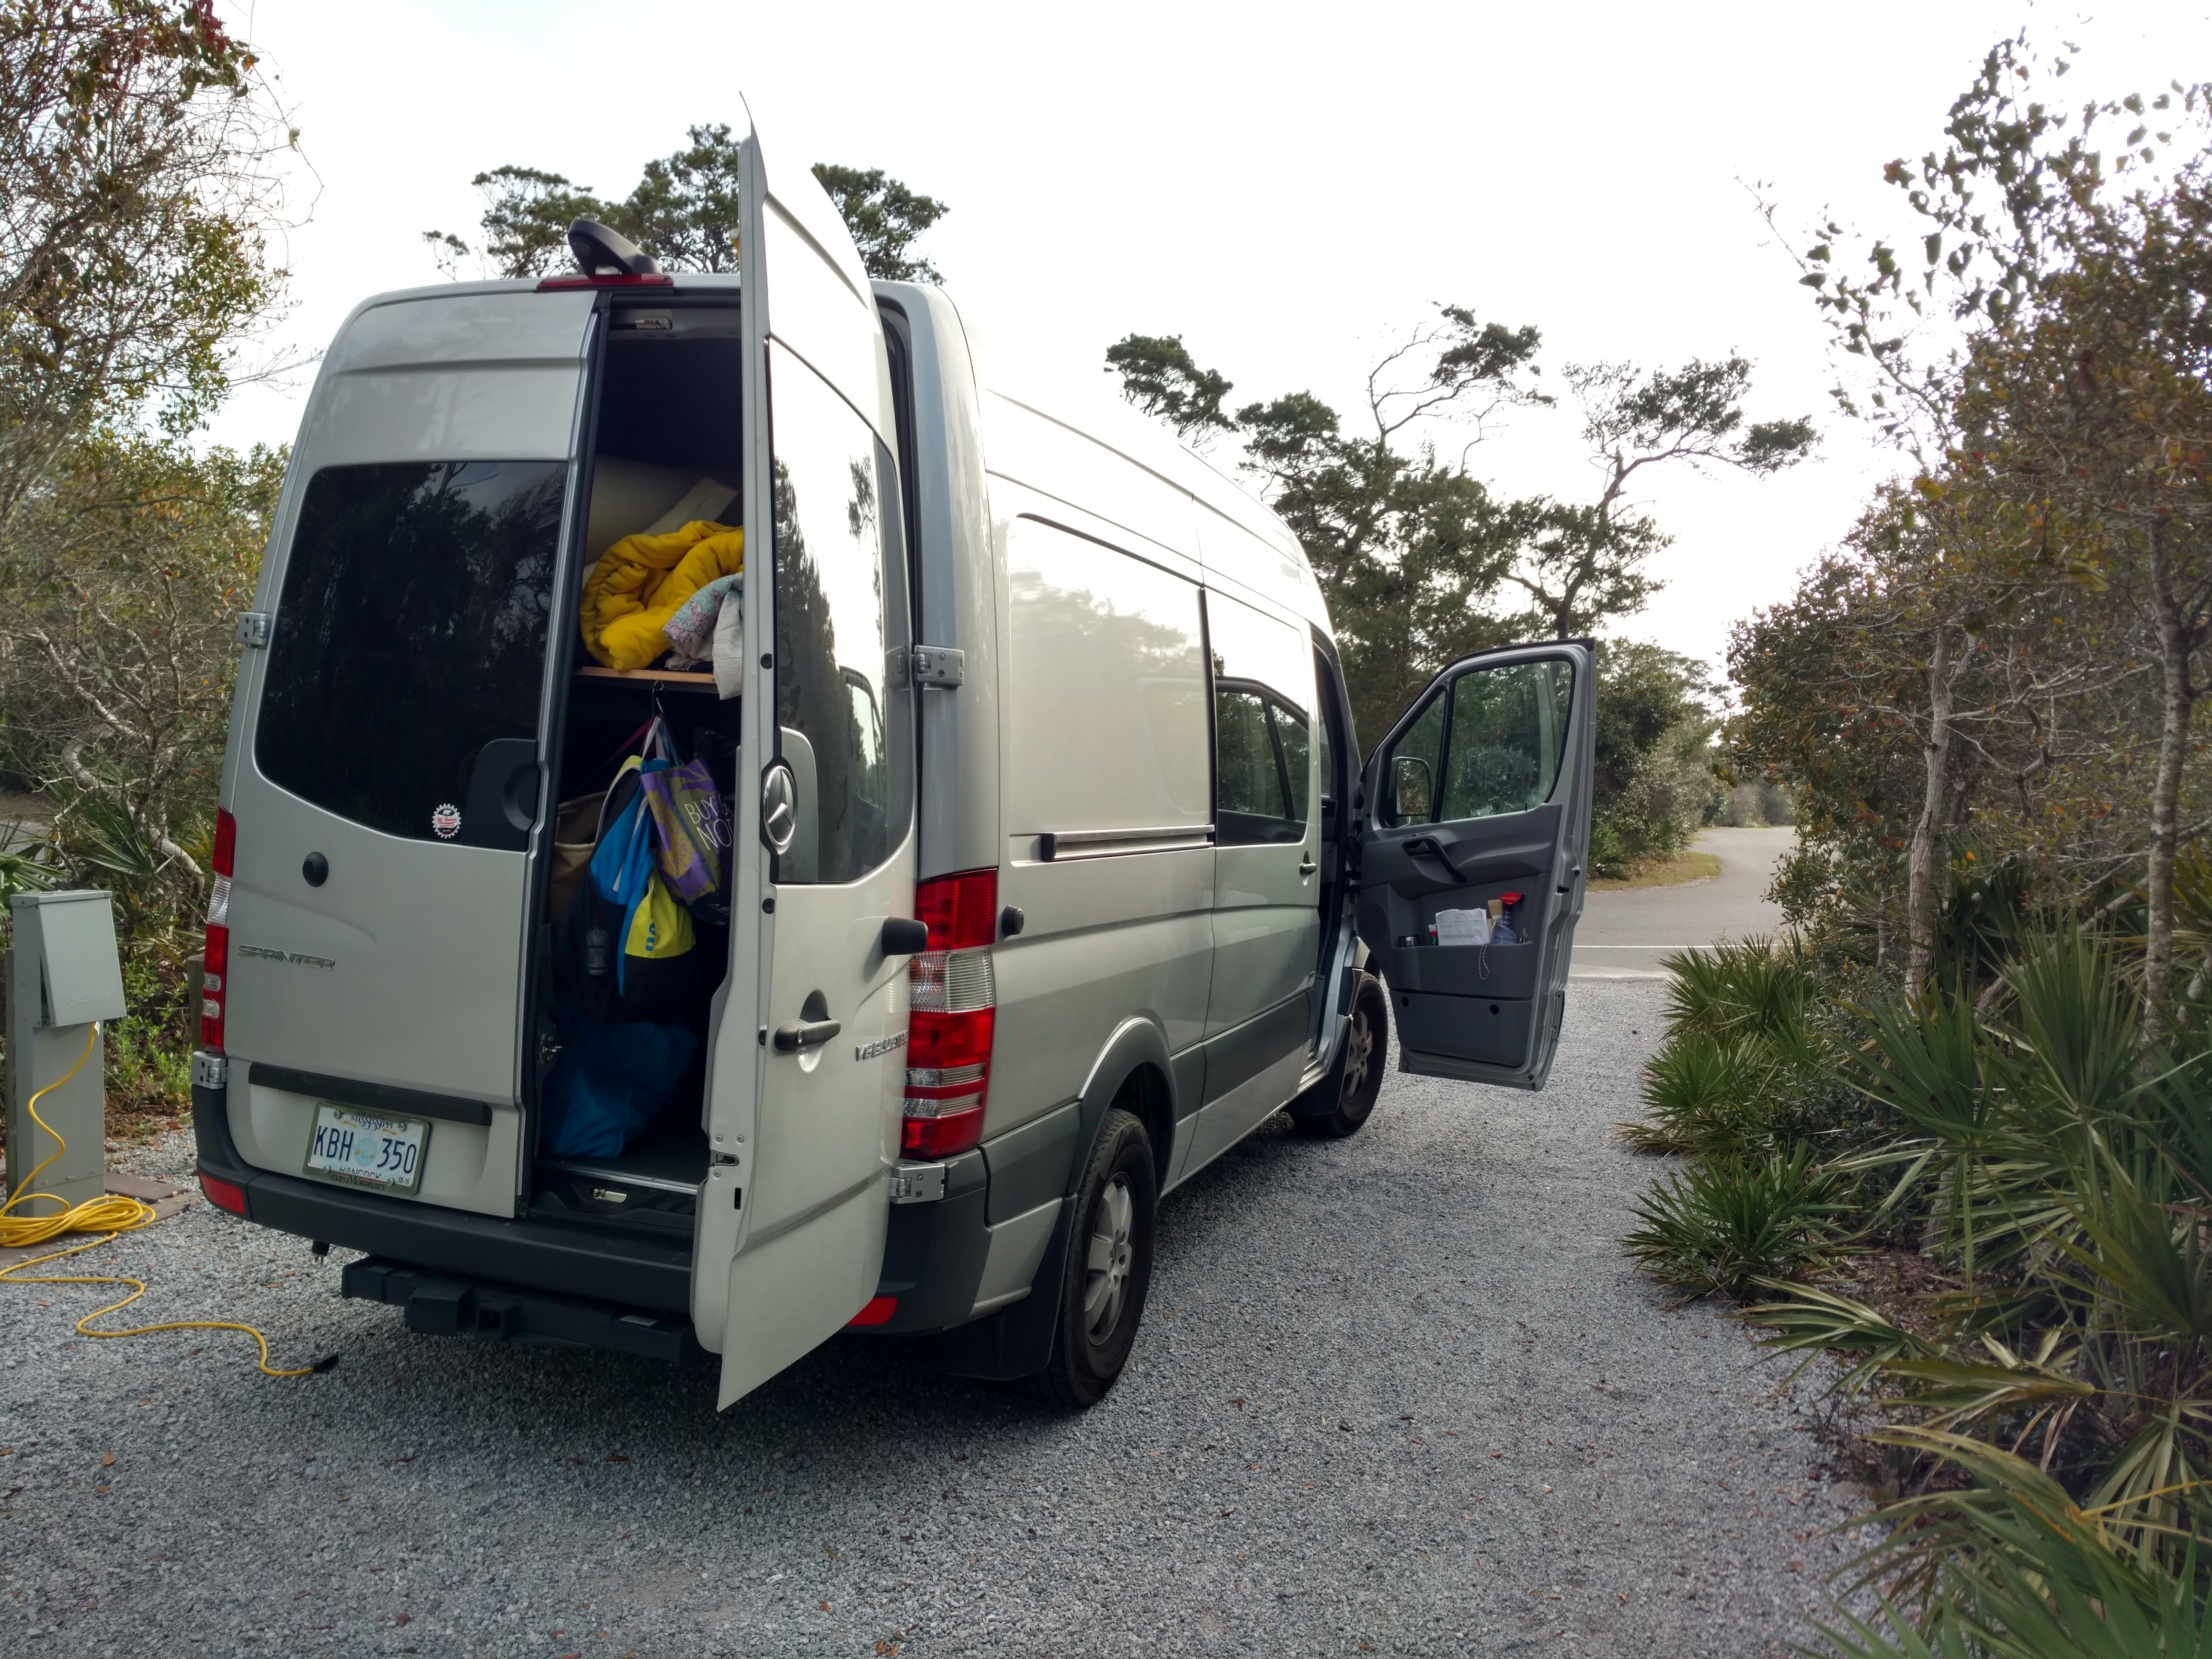 A Little Trip To The Destin Beach Henderson State Park 50 Amp Rv Hookup It Did Have Very Nice Electrical Hookups That Included 15 20 30 And Ac Power